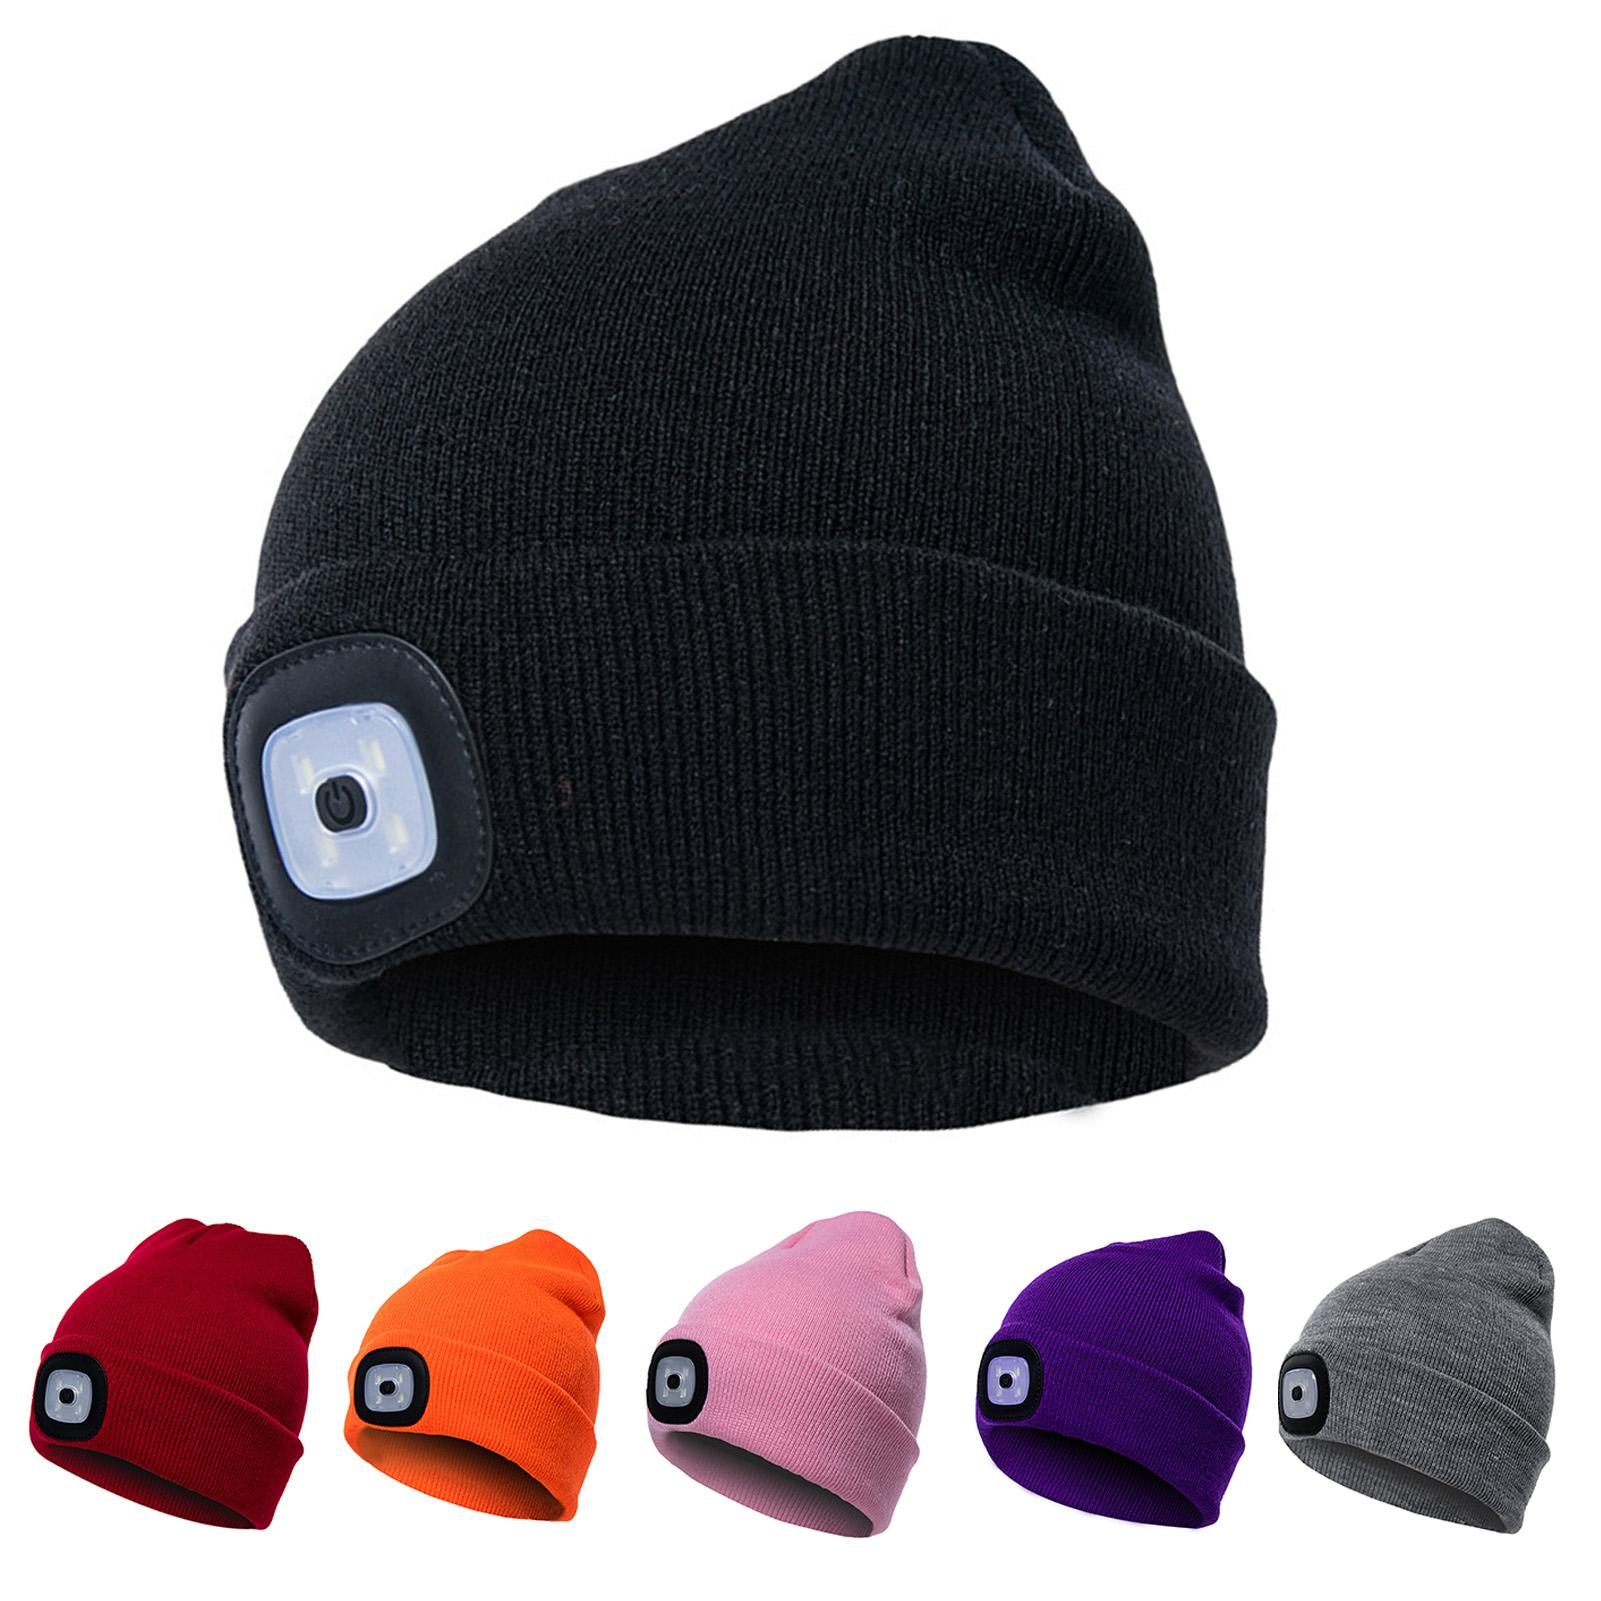 Unisex Winter LED Light Luminous Warm Knitted Hat Outdoor Camping Head Lamp Cap